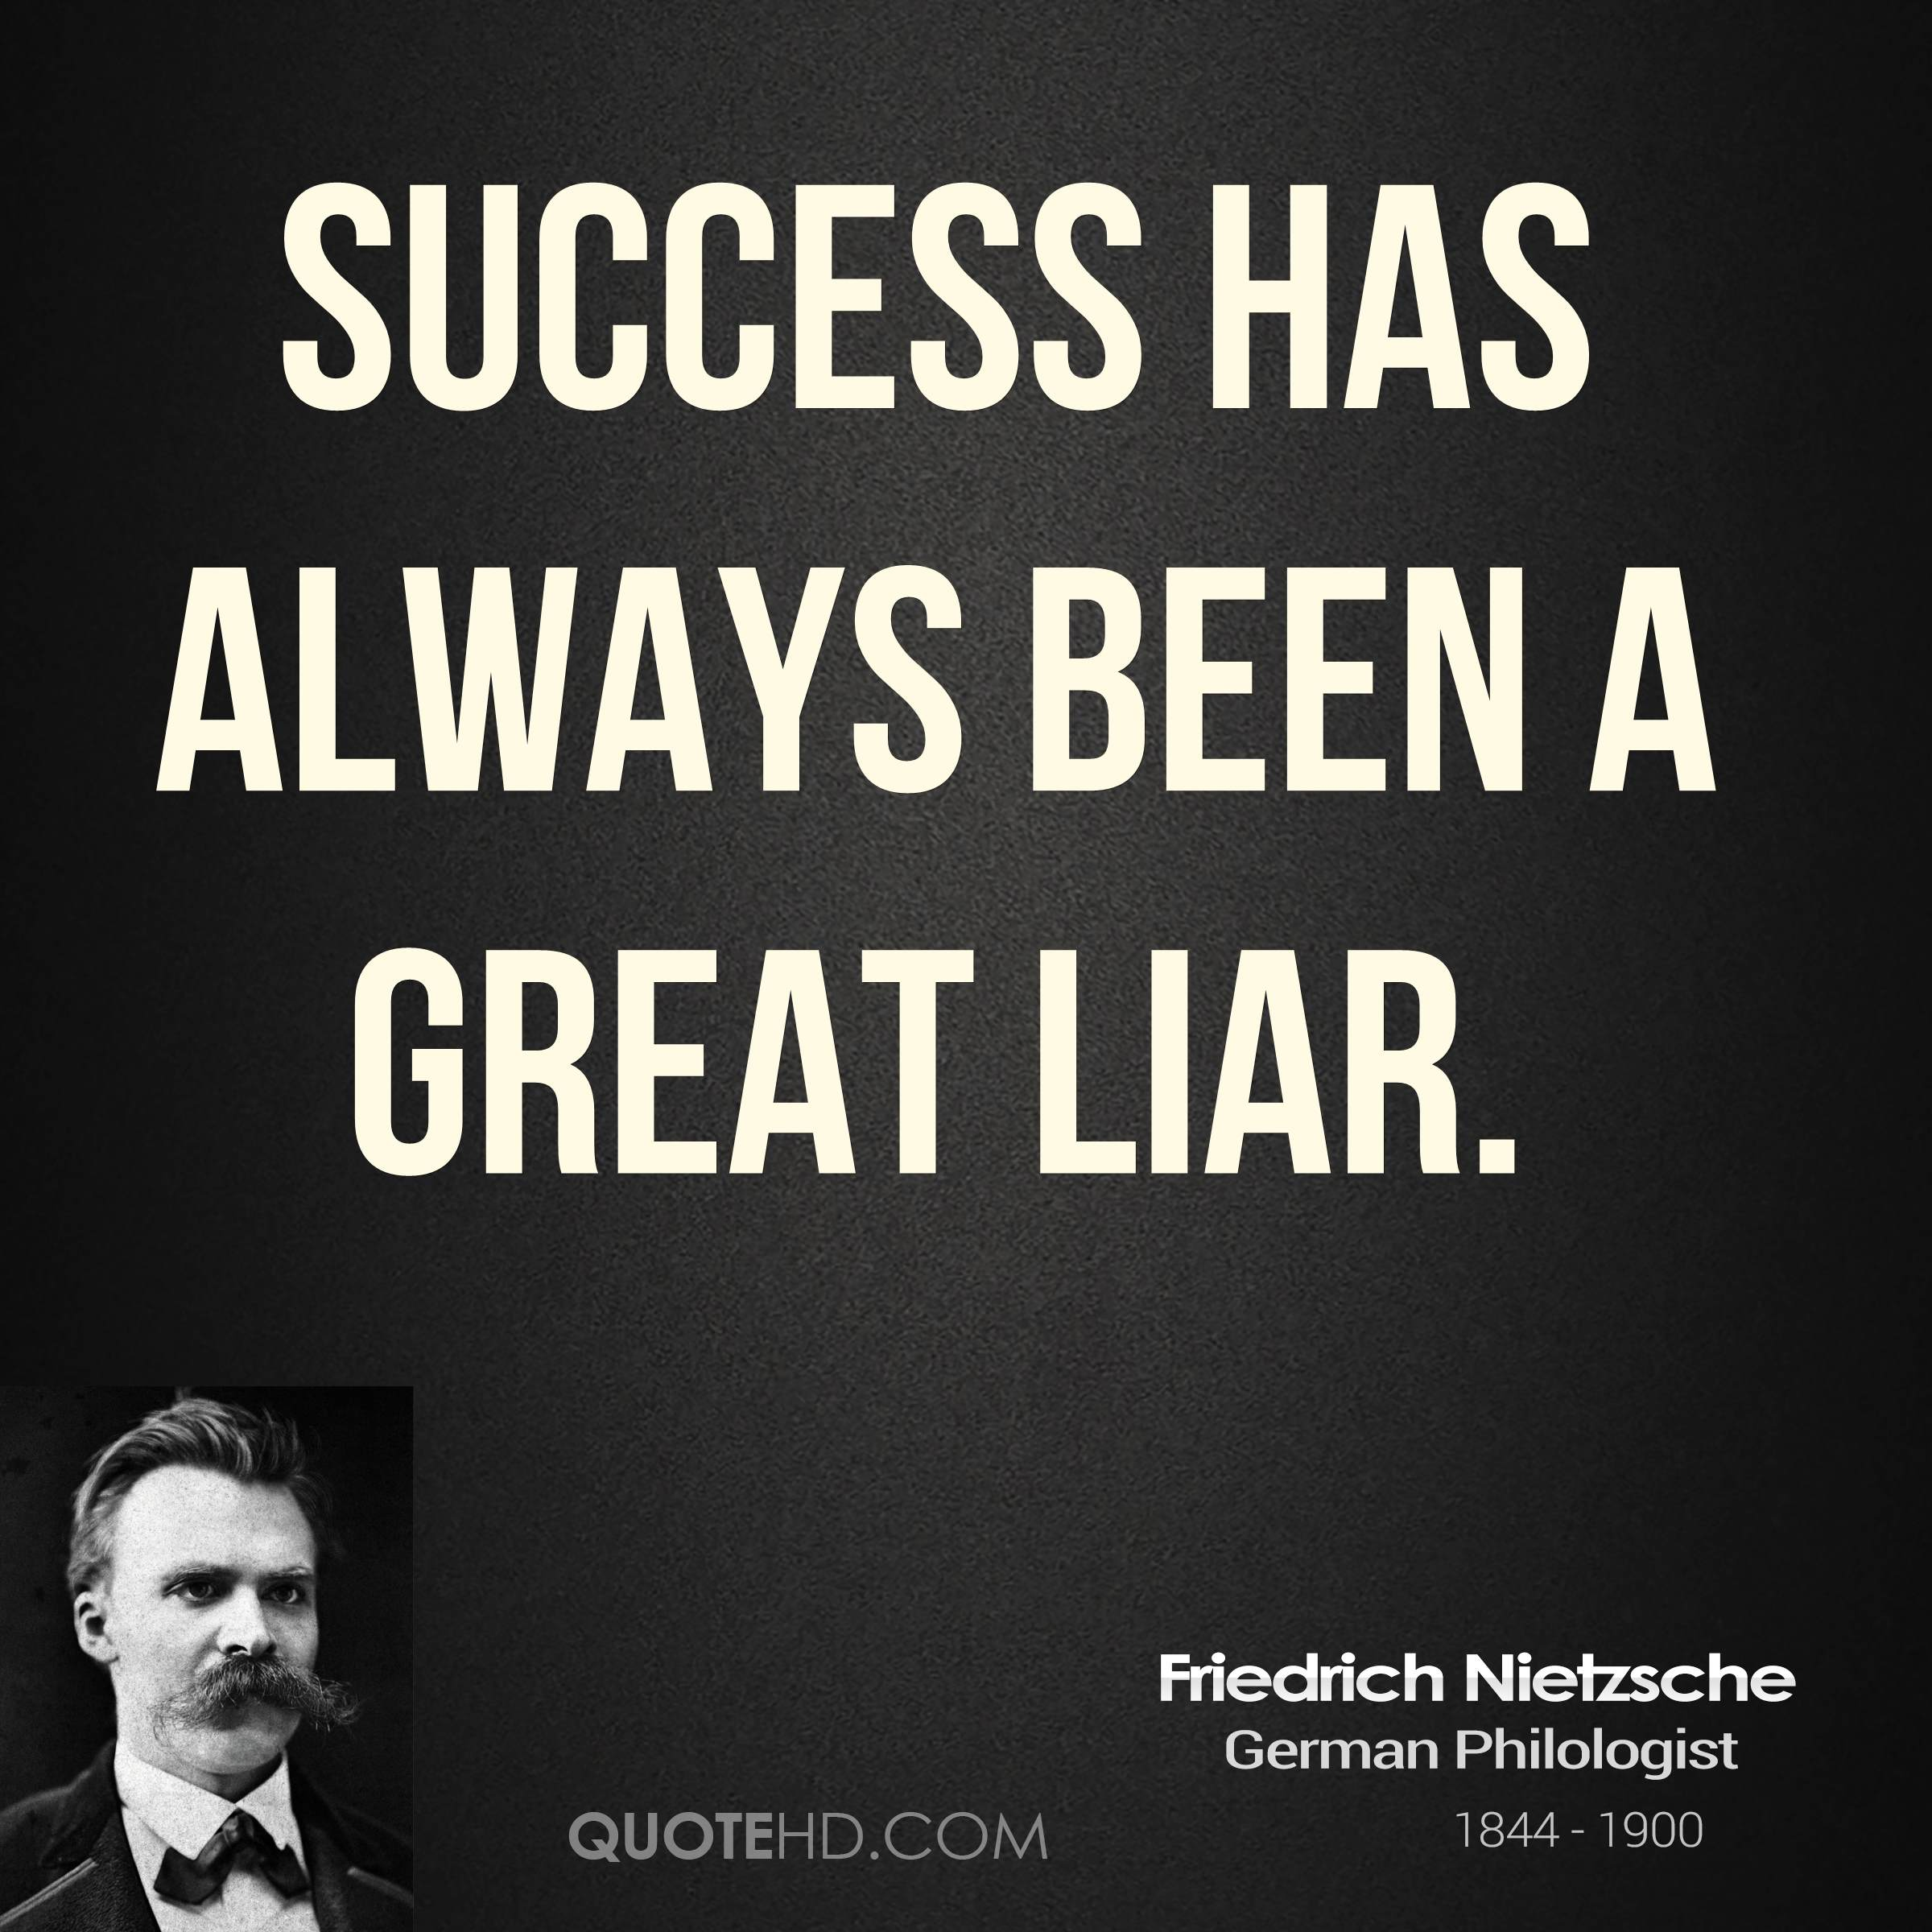 Success has always been a great liar.